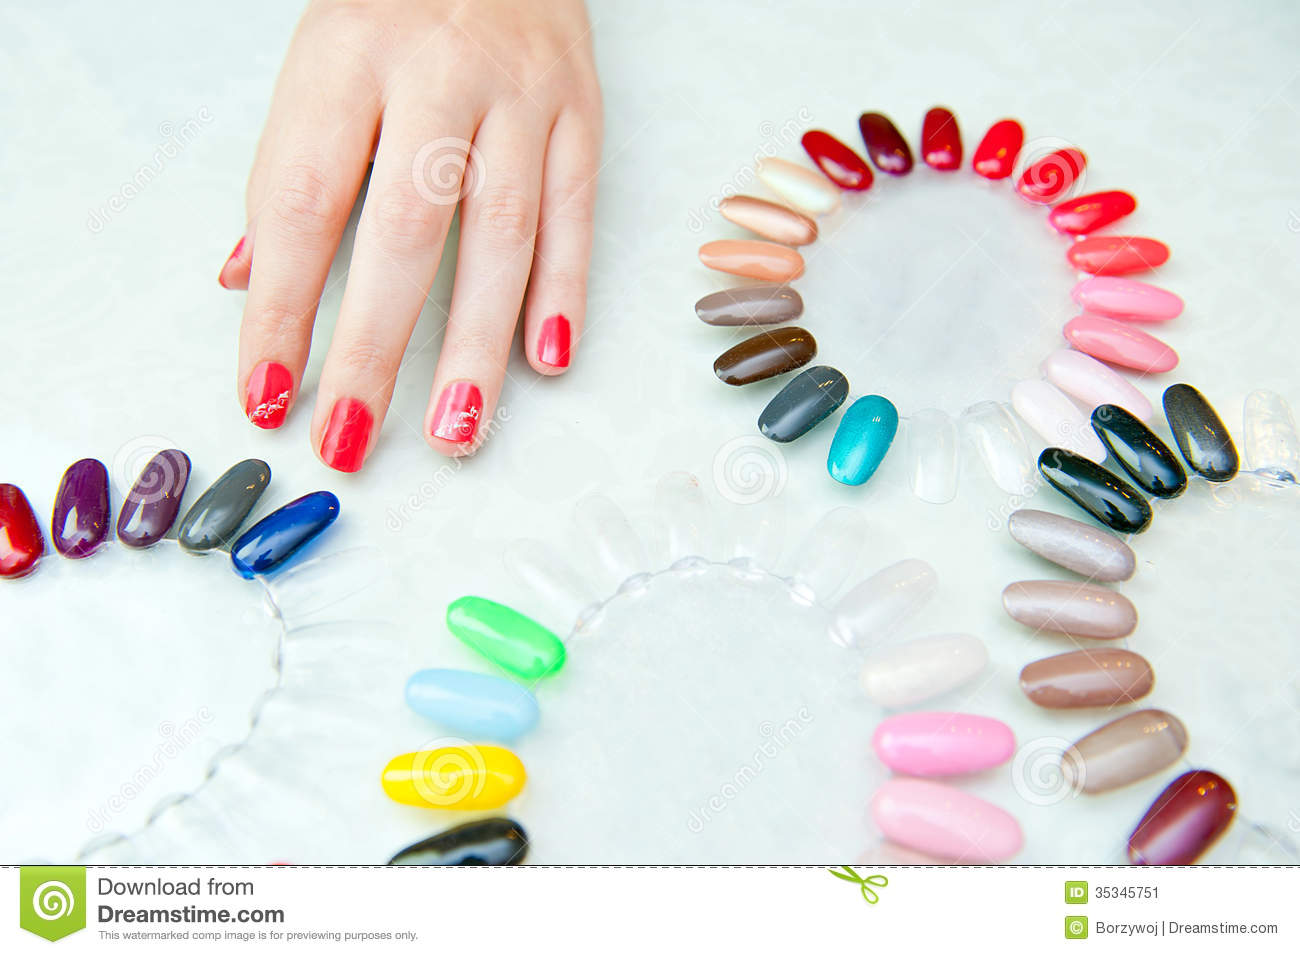 Communication on this topic: How to Choose Nail Polish Colour That , how-to-choose-nail-polish-colour-that/